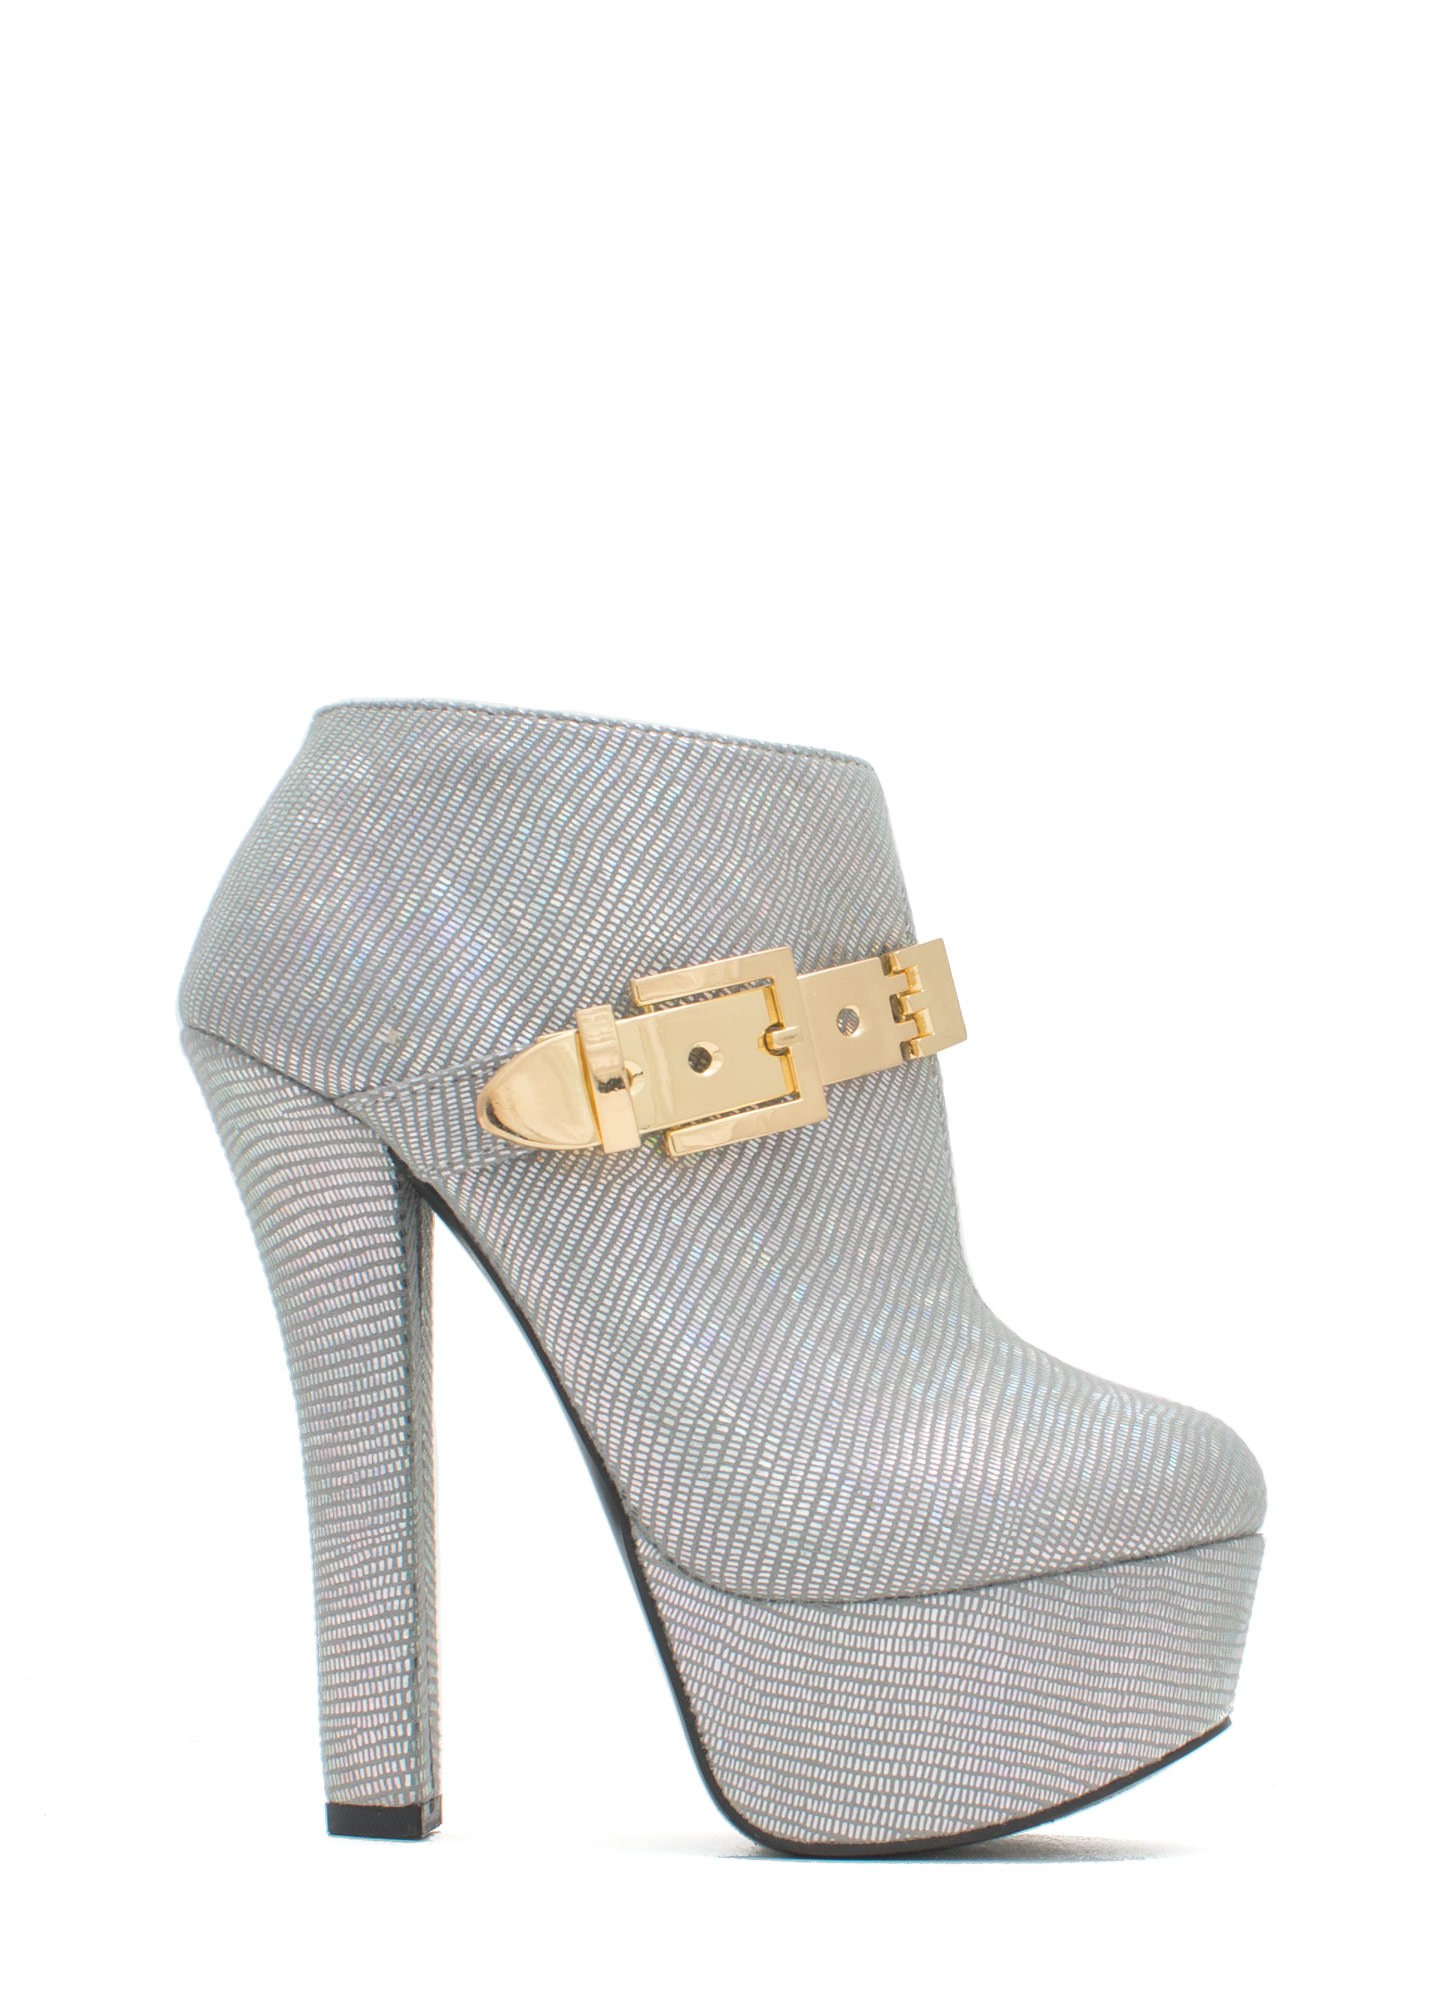 Queen Of Disco Metallic Buckle Booties SILVER